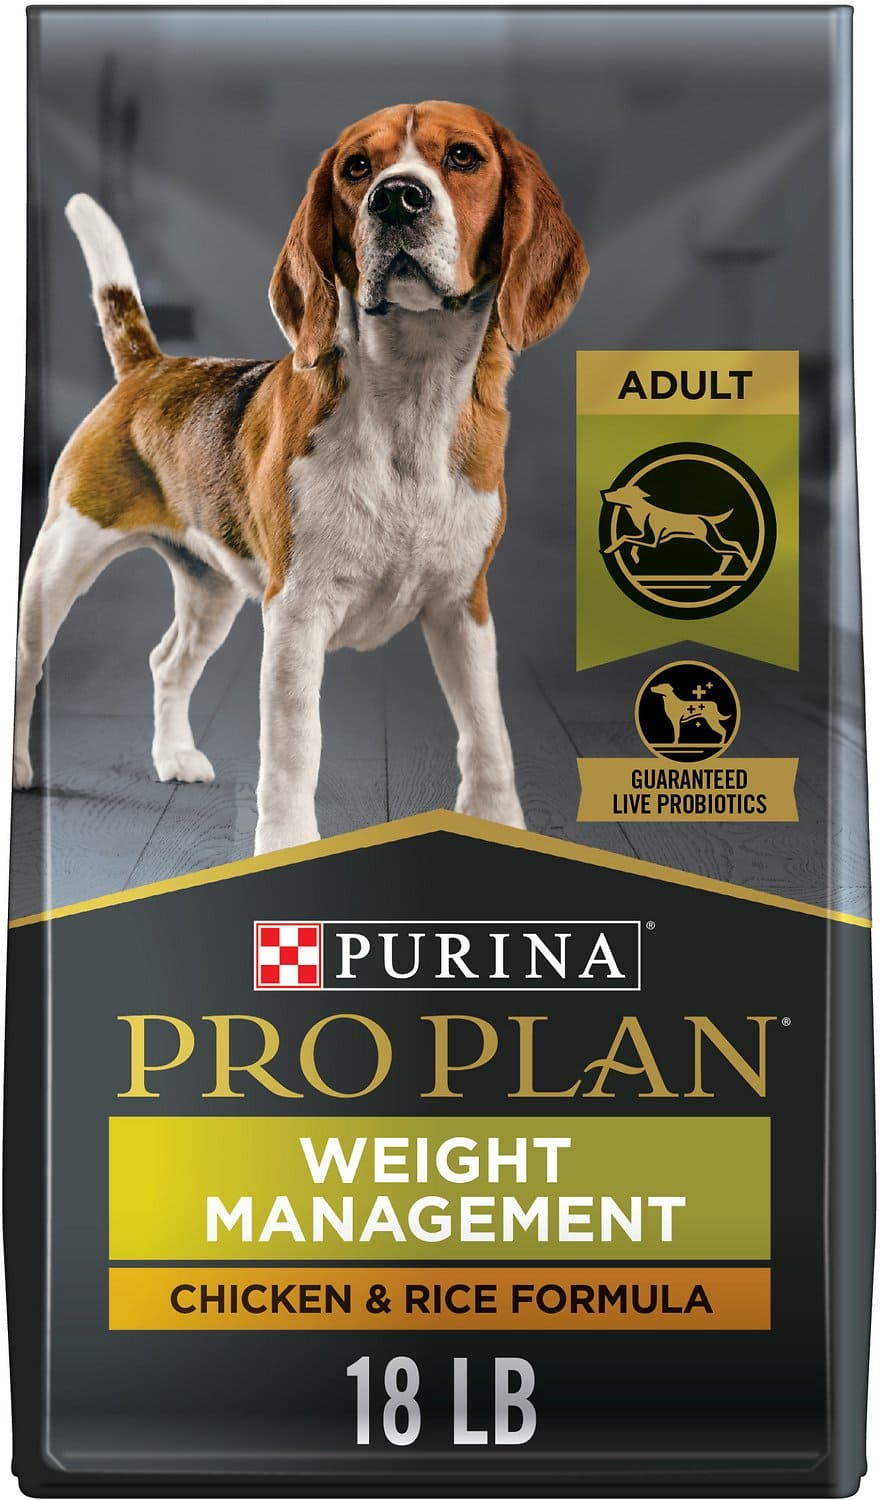 Purina Pro Plan Adult Weight Management Formula for Dogs 18 lbs Chicken & Rice 1